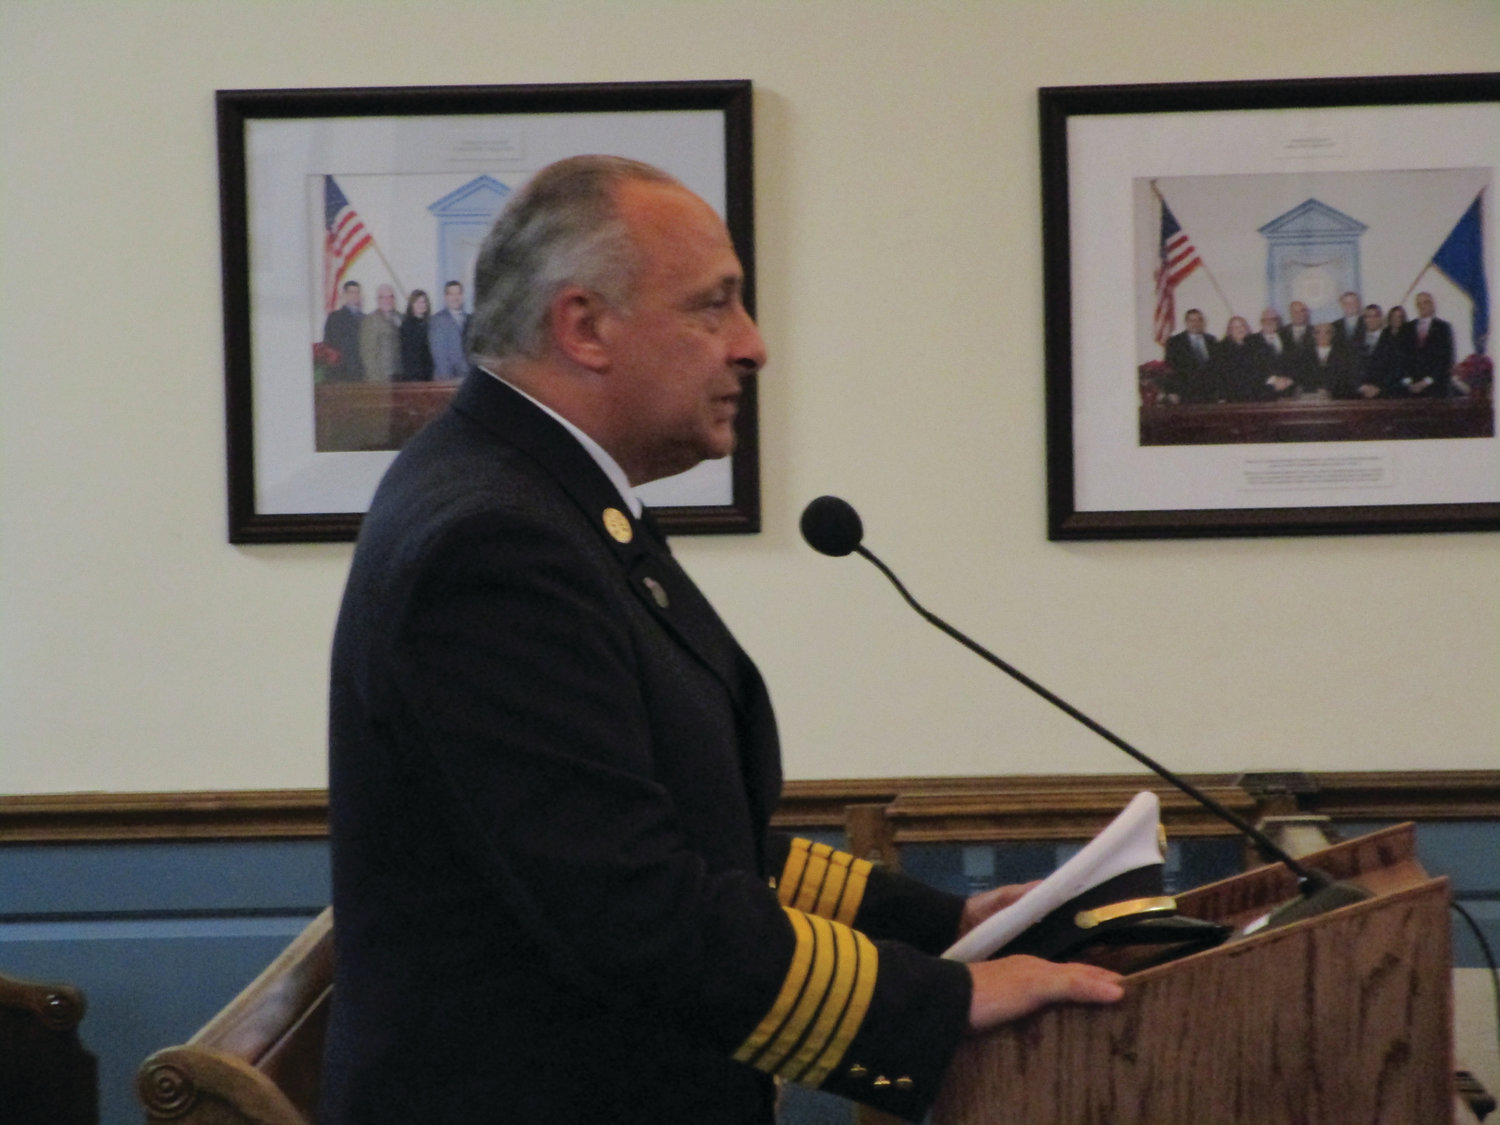 CHIEF'S RECEPTION: Cranston Assistant Fire Chief Paul Valletta addresses members of the City Council following Monday's 7-0 vote of the Finance Committee in favor of his appointment as the next fire chief.